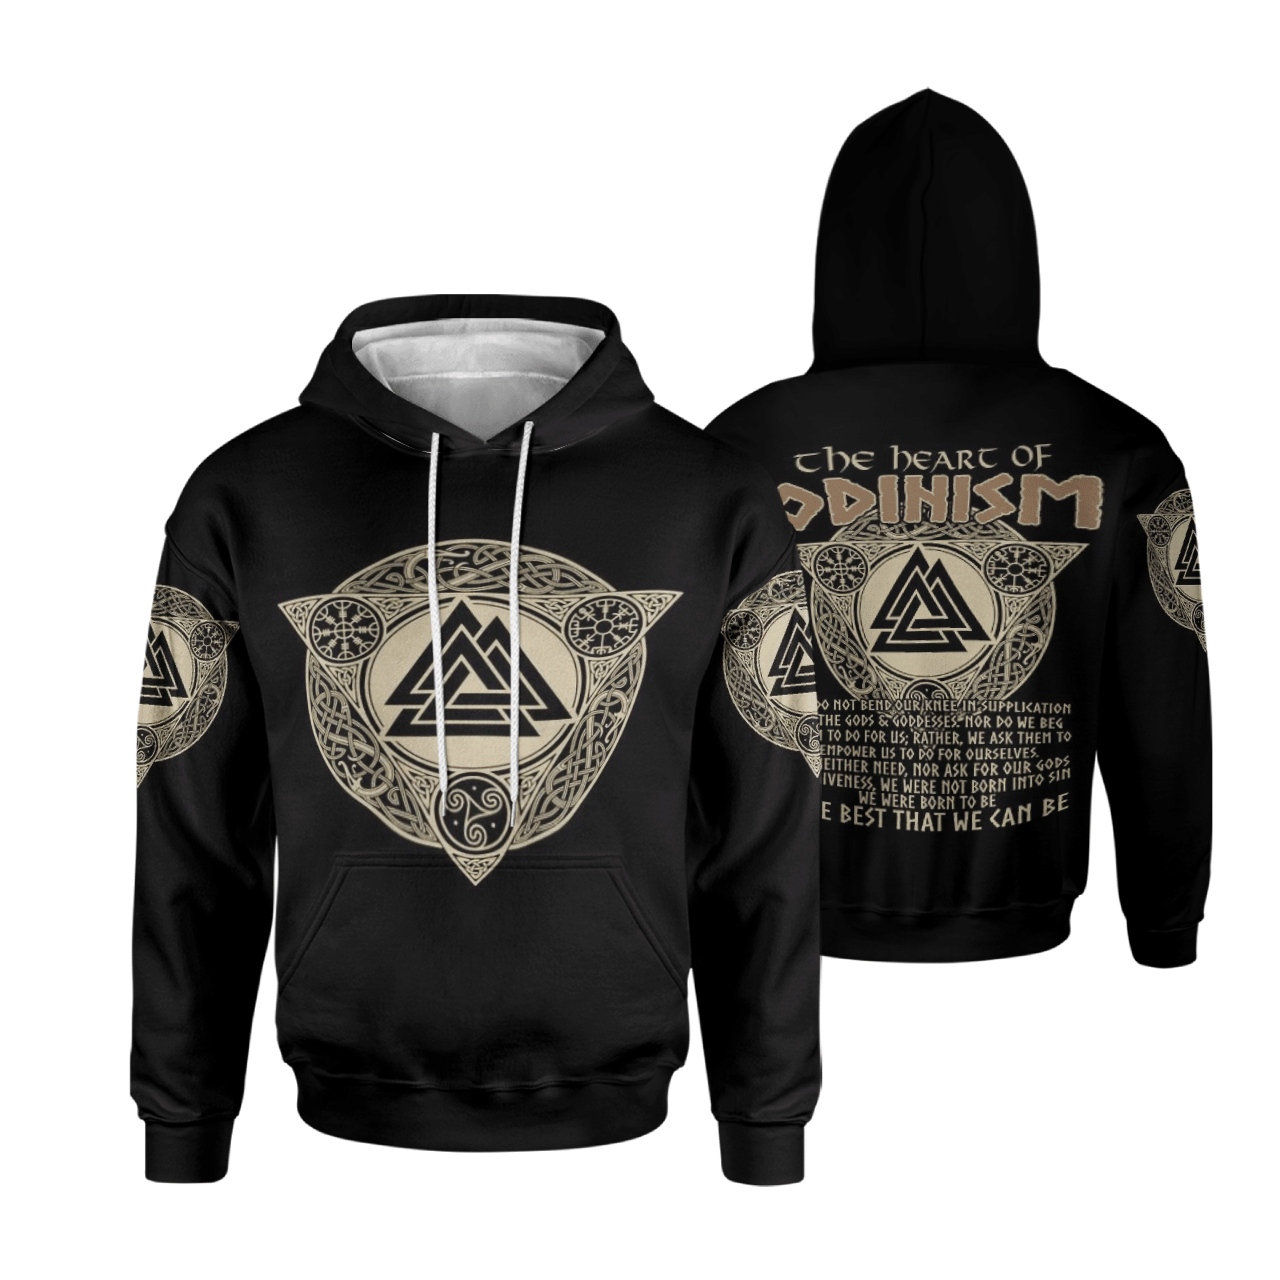 Viking Hoodie 3D - The Heart of ODINISM